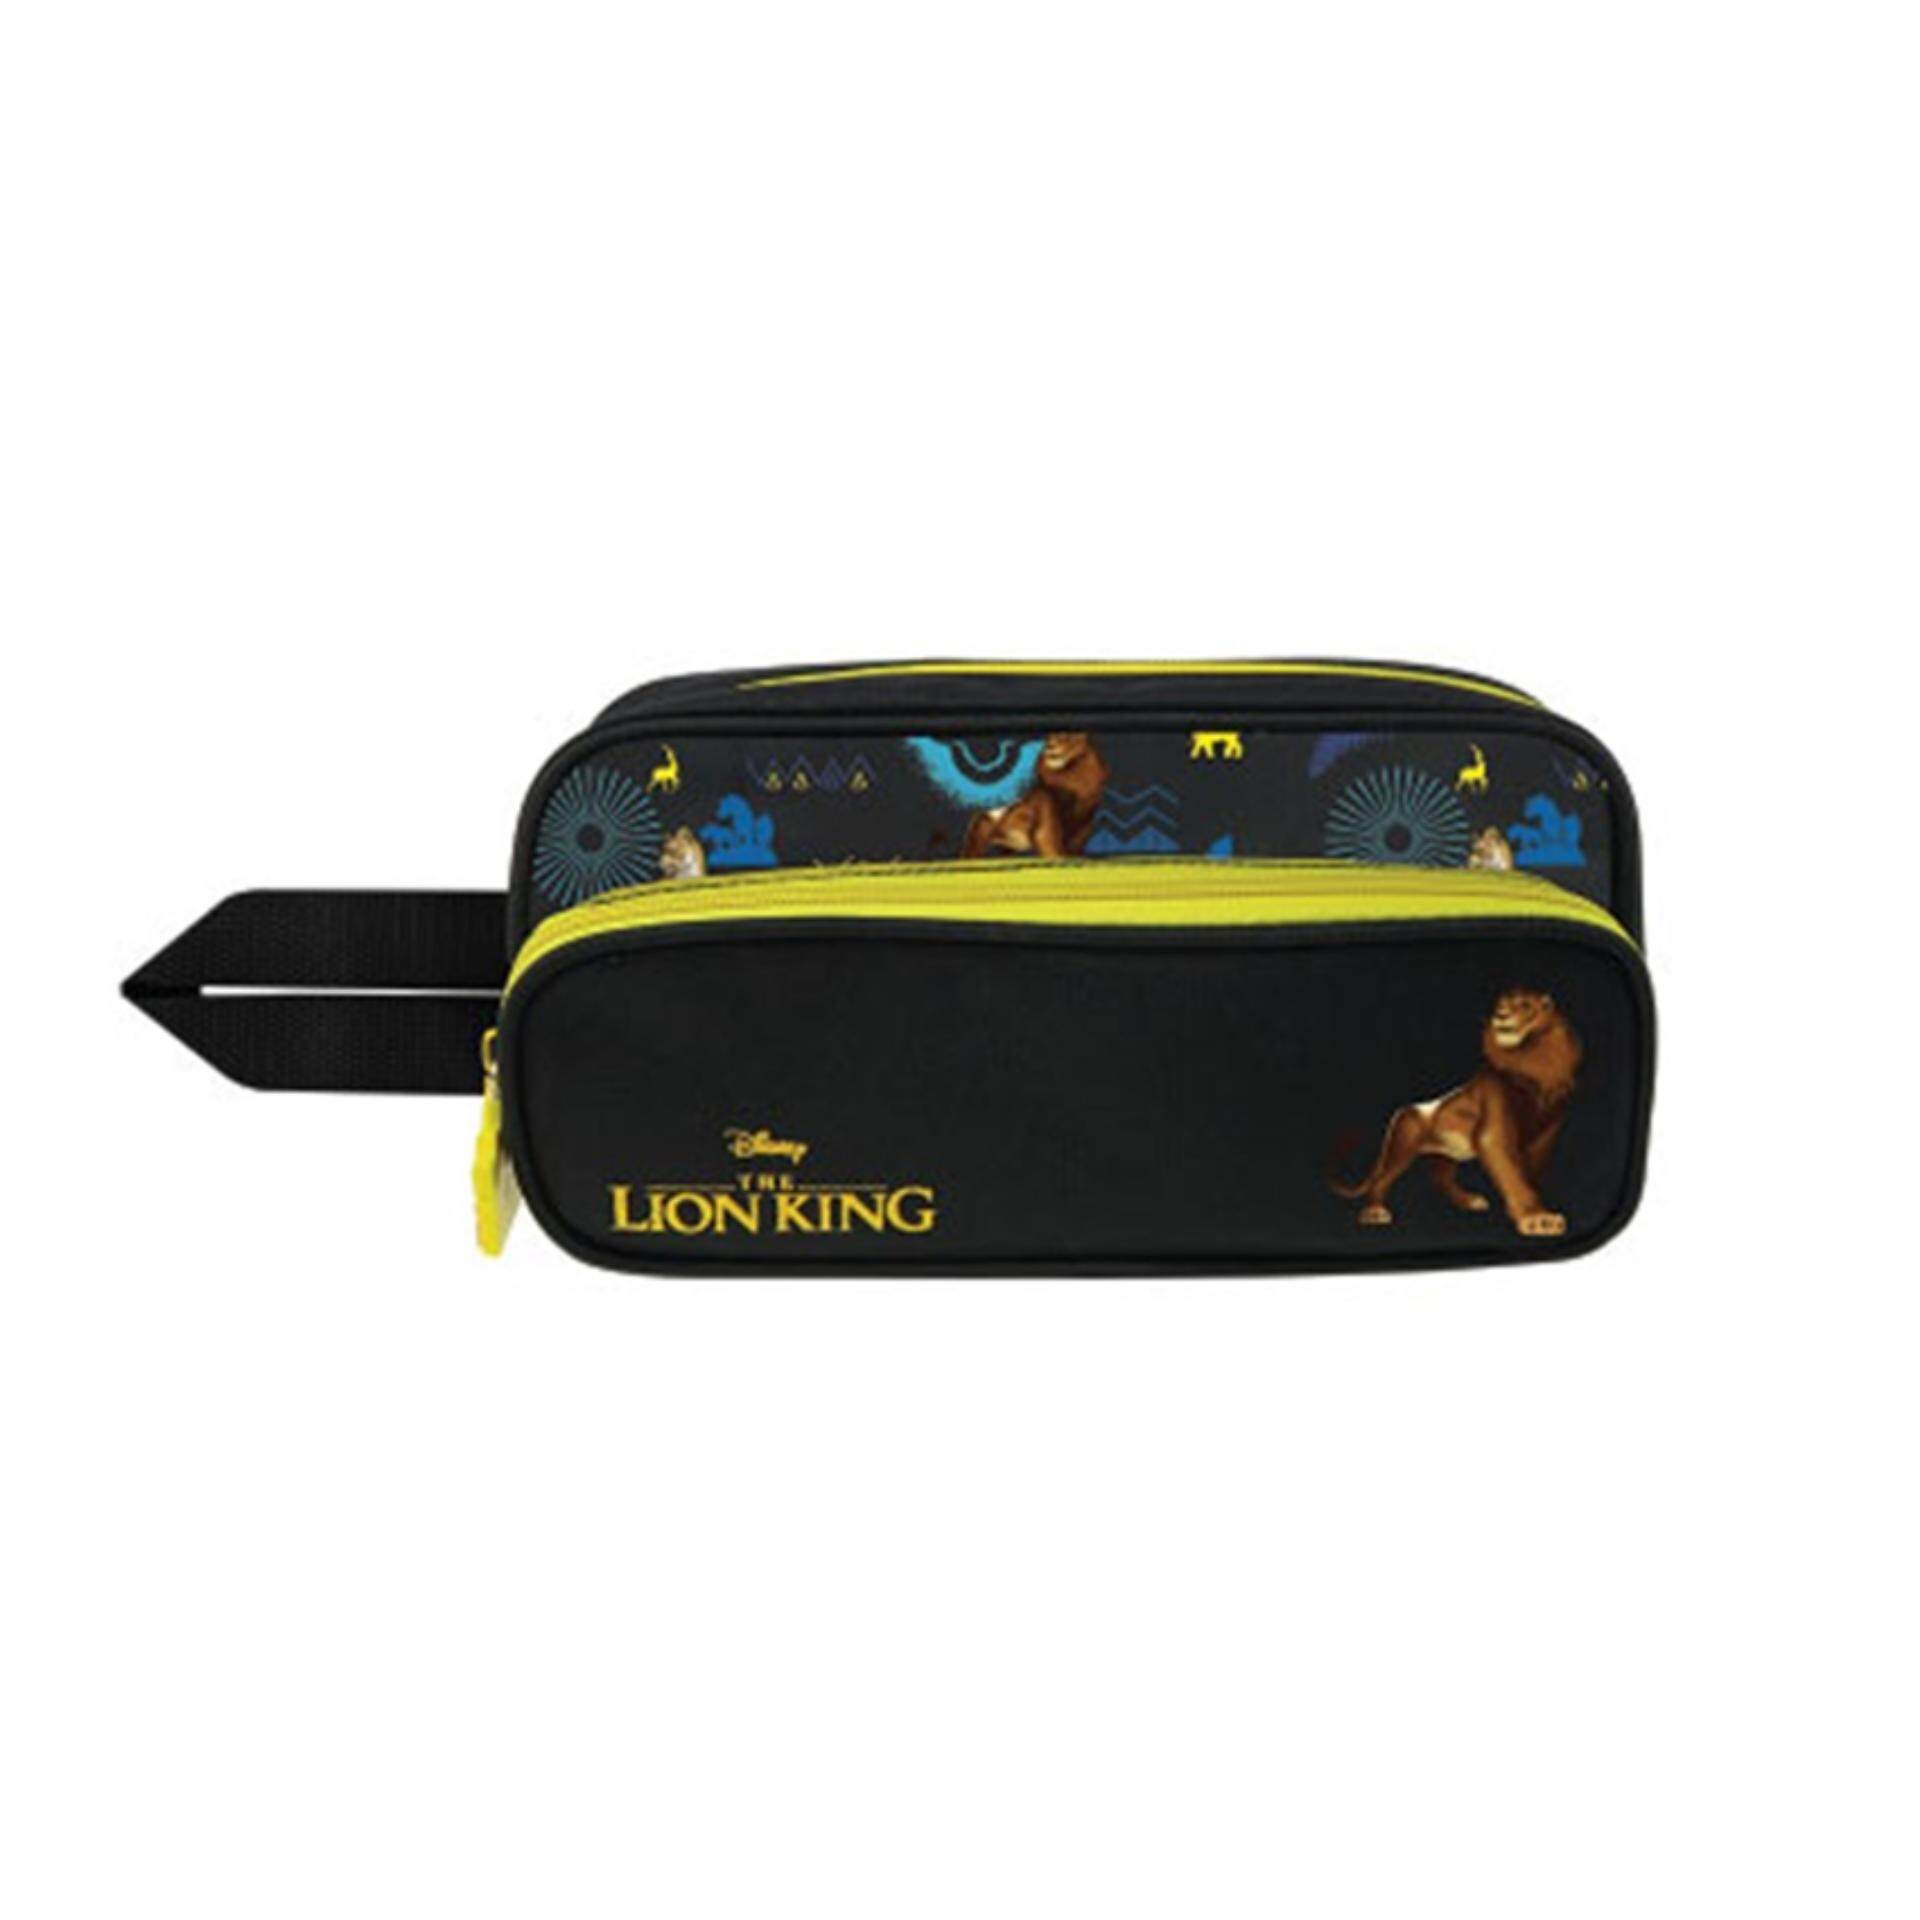 Disney The Lion King Pencil Bag With Front Pocket - Black Colour